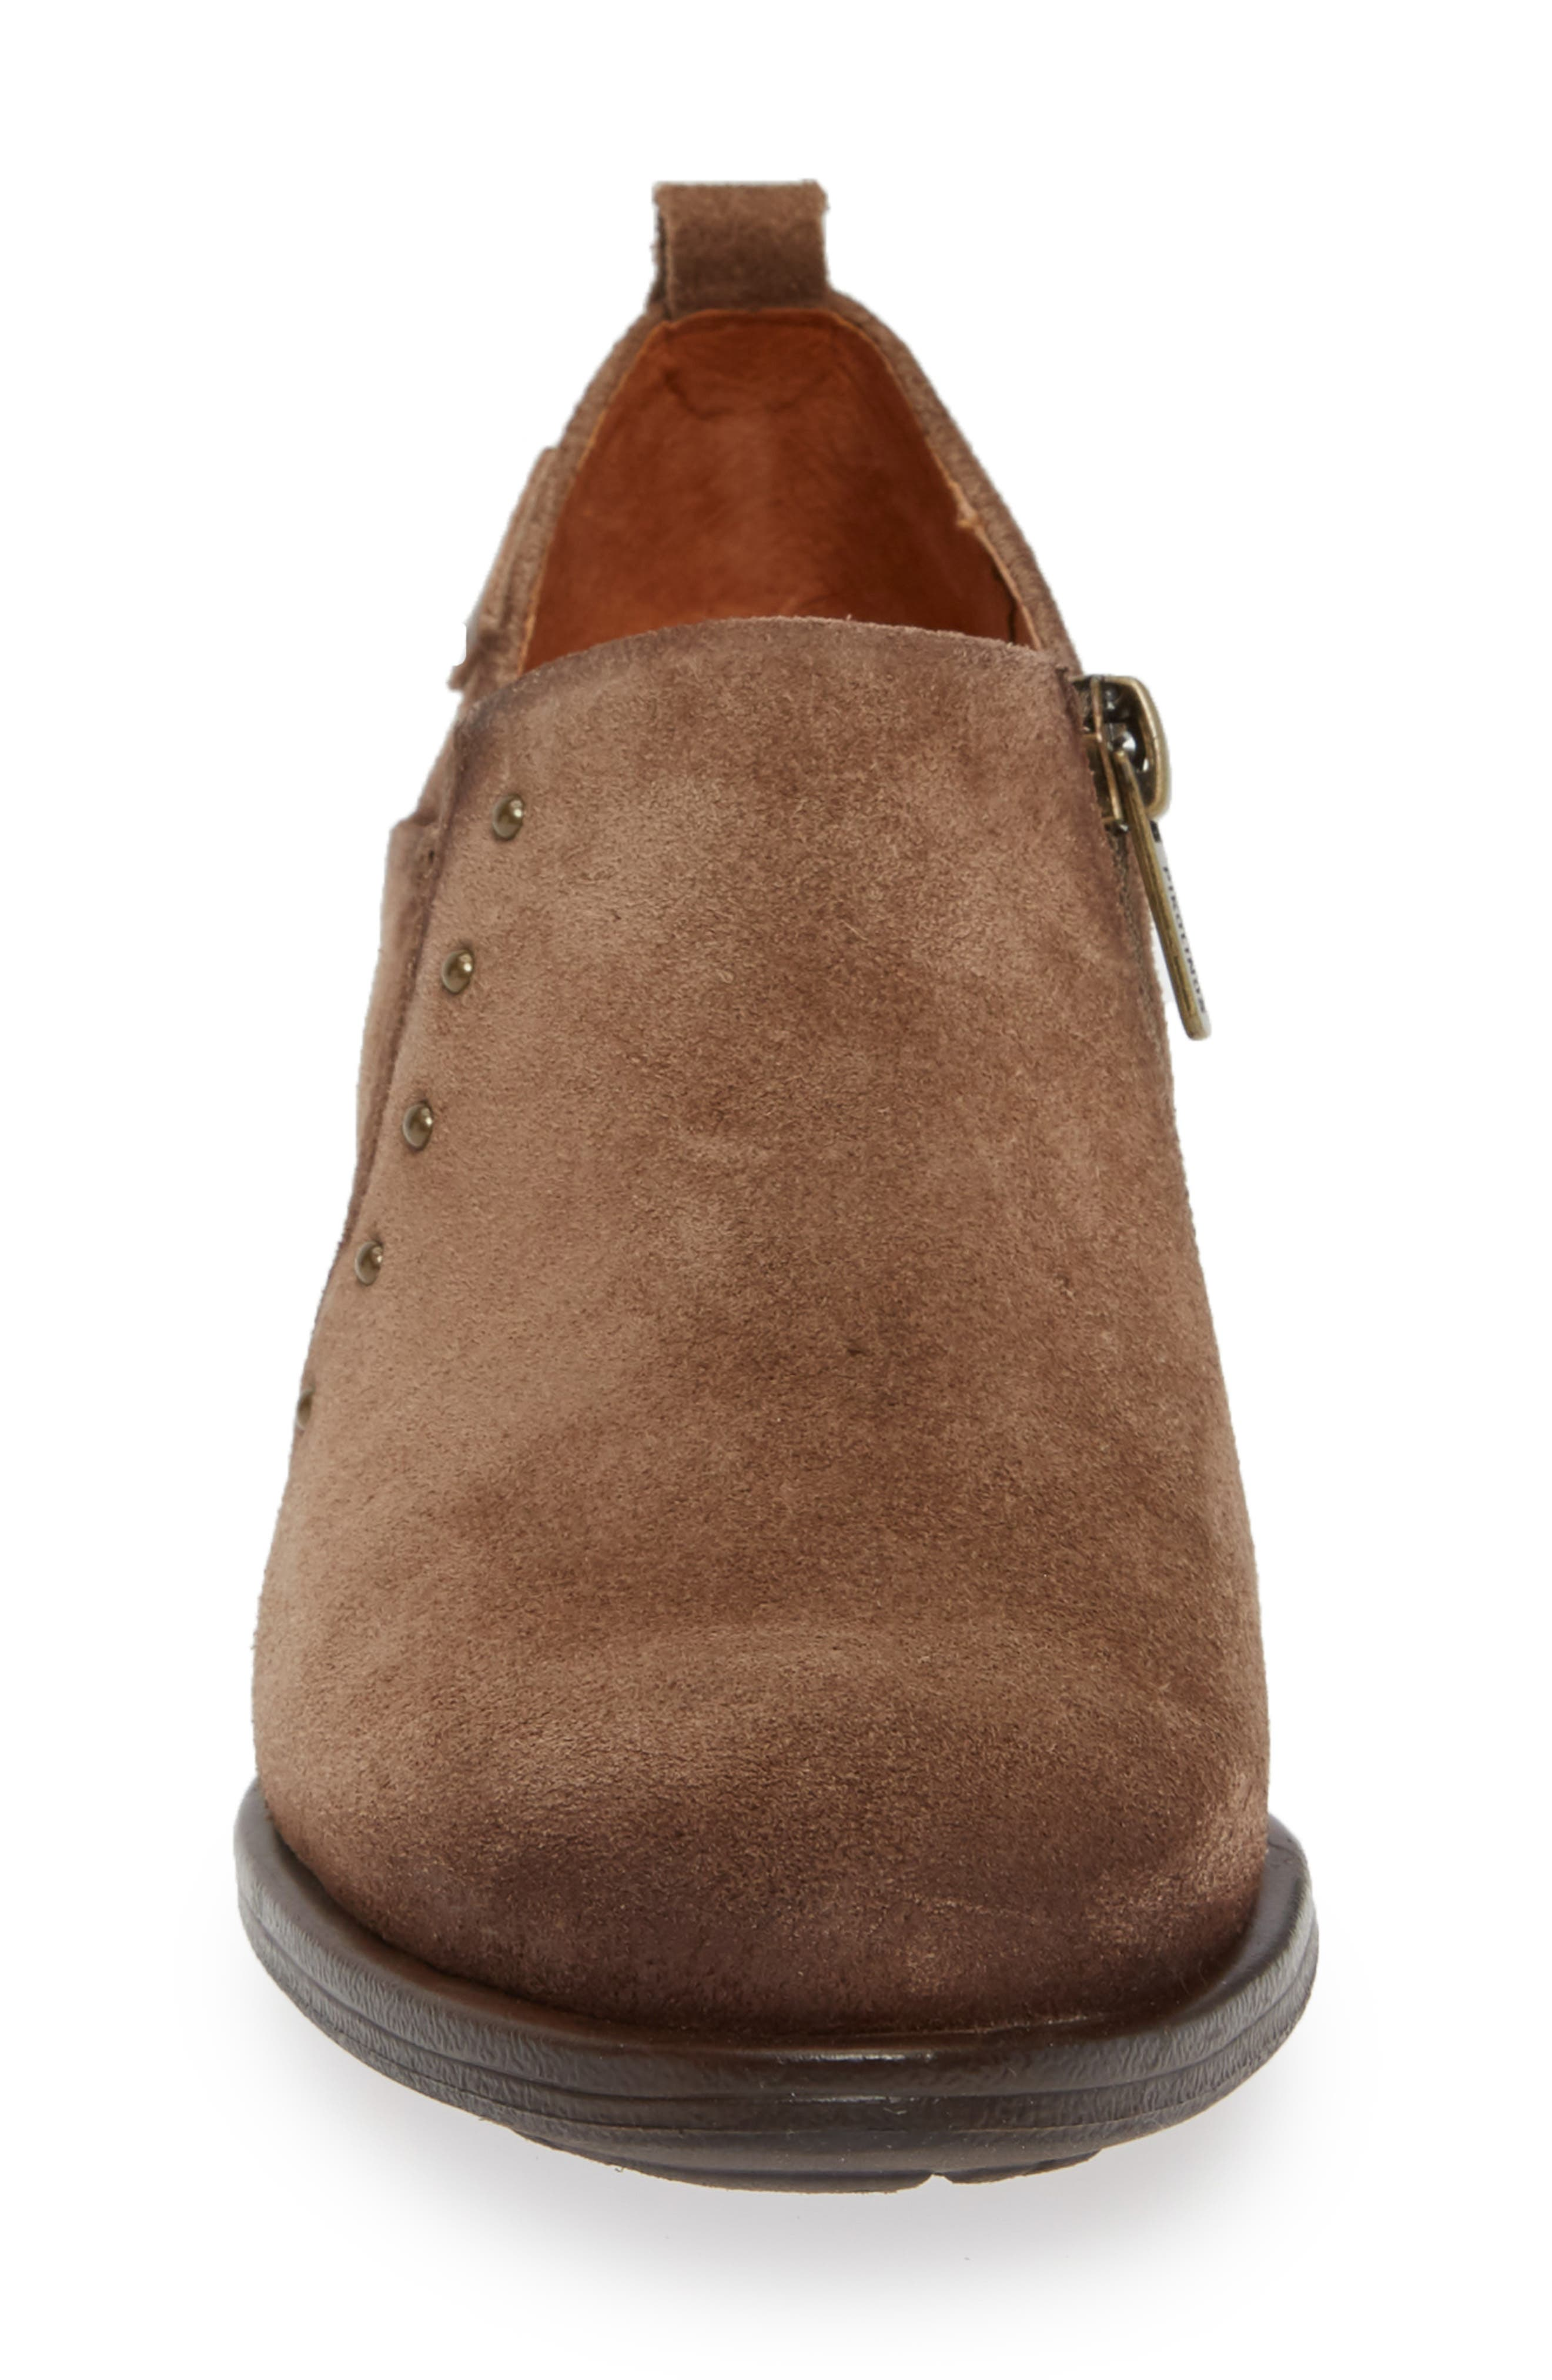 Baquiera Ankle Bootie,                             Alternate thumbnail 4, color,                             STONE SUEDE